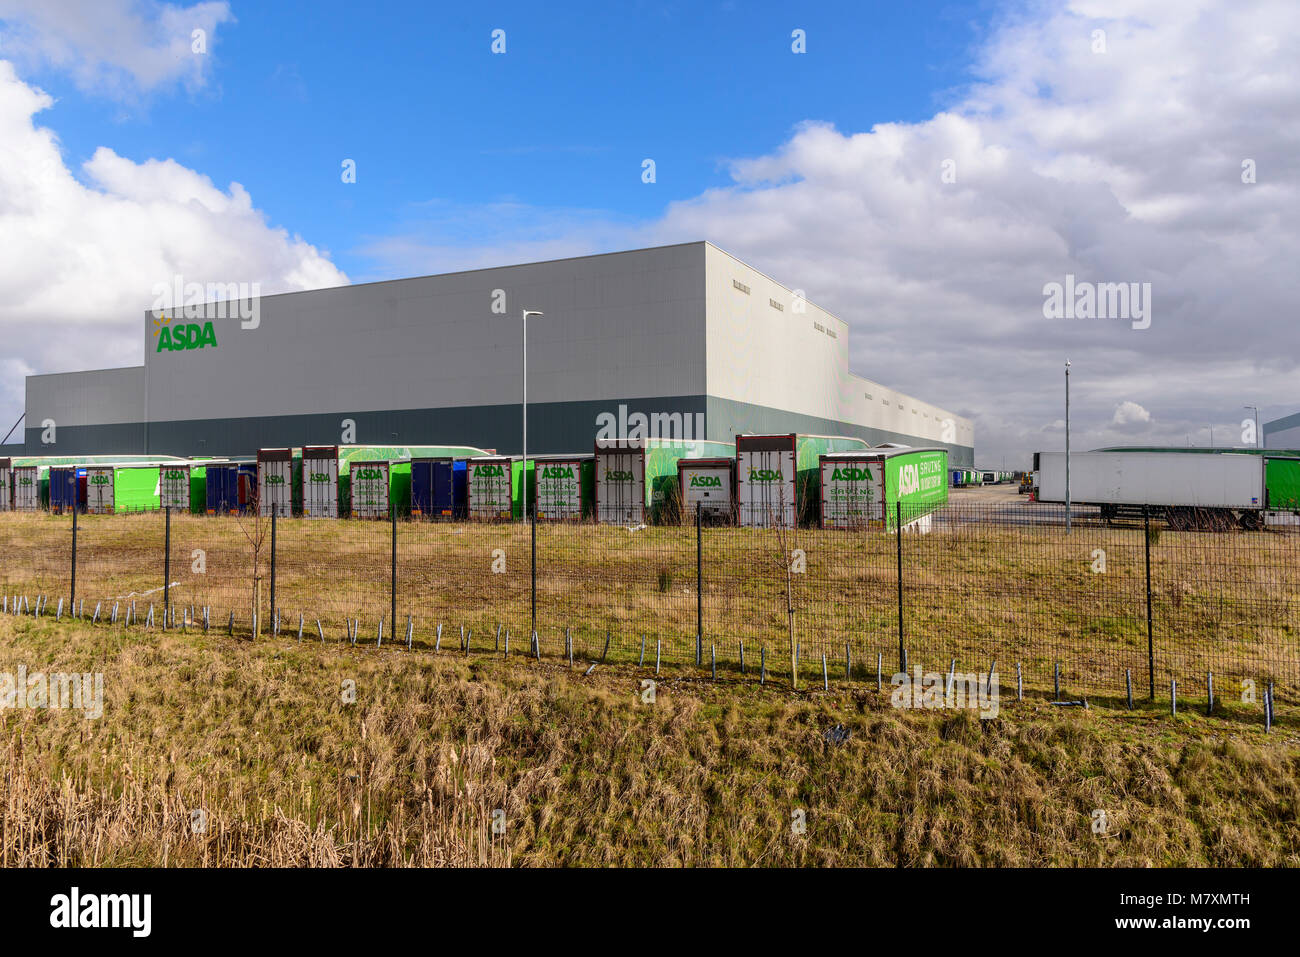 A massive Asda distribution warehouse on the Omega development in Warrington. - Stock Image